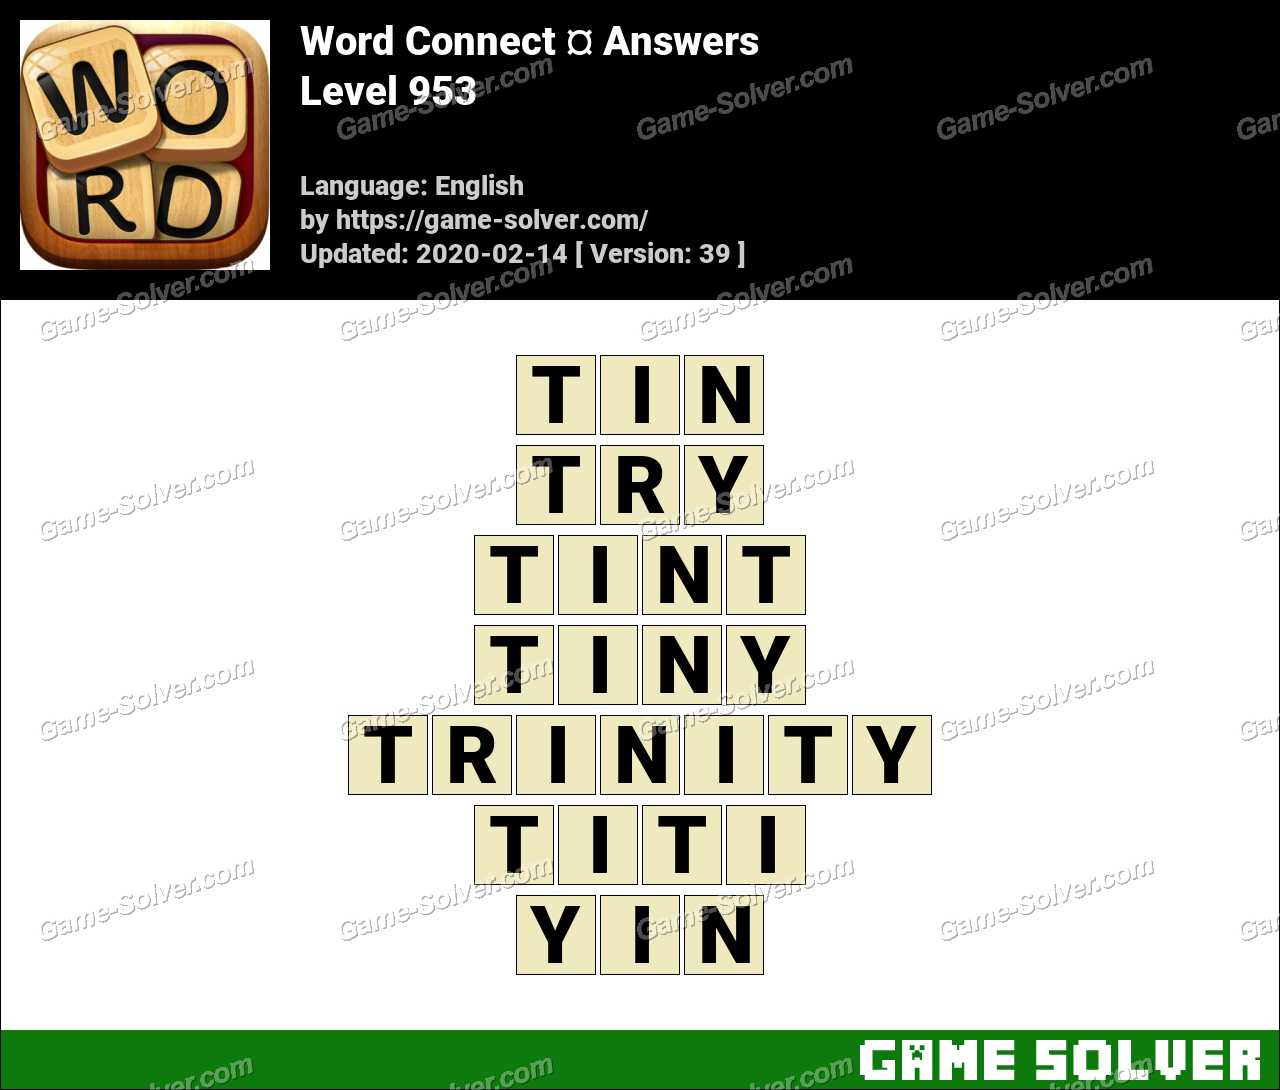 Word Connect Level 953 Answers